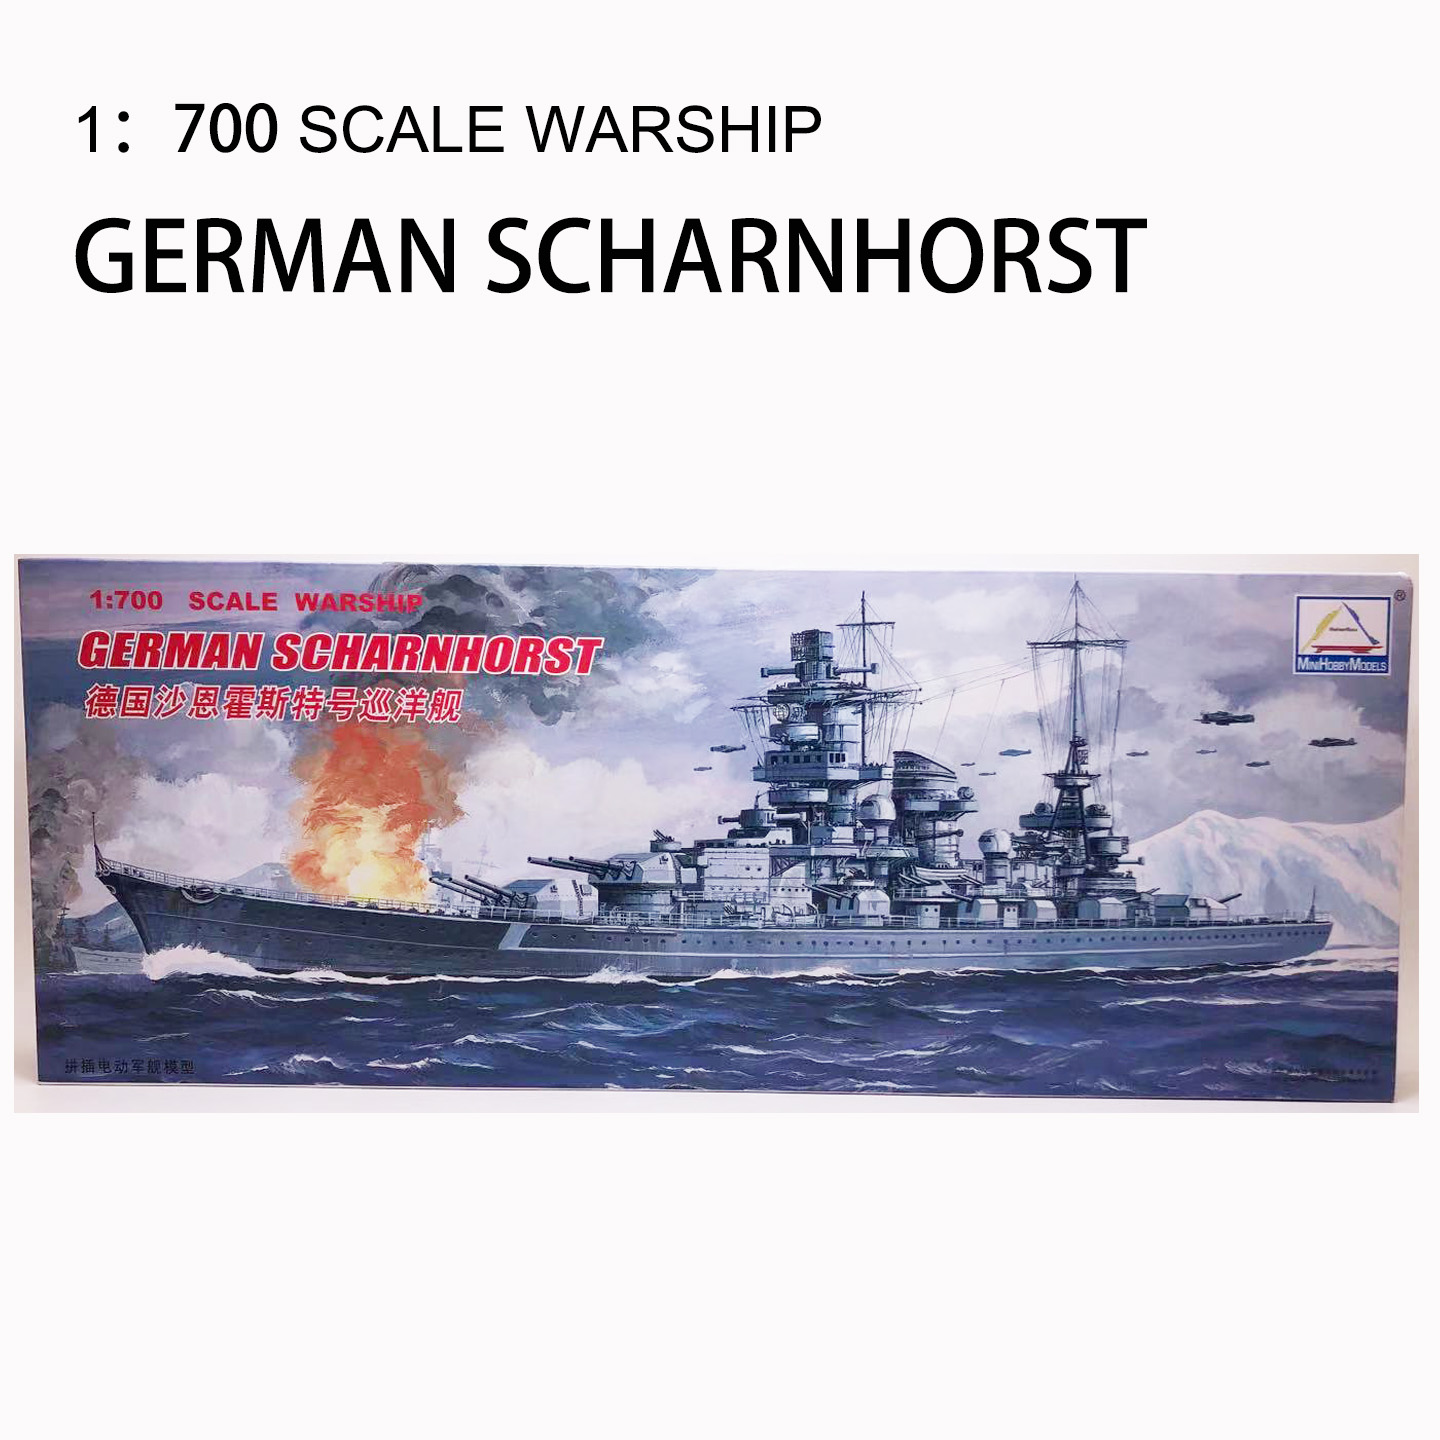 1:700 Scale Warship World War II German SCHARNHORST Cruiser Plastic Assembly Model Electric Toy